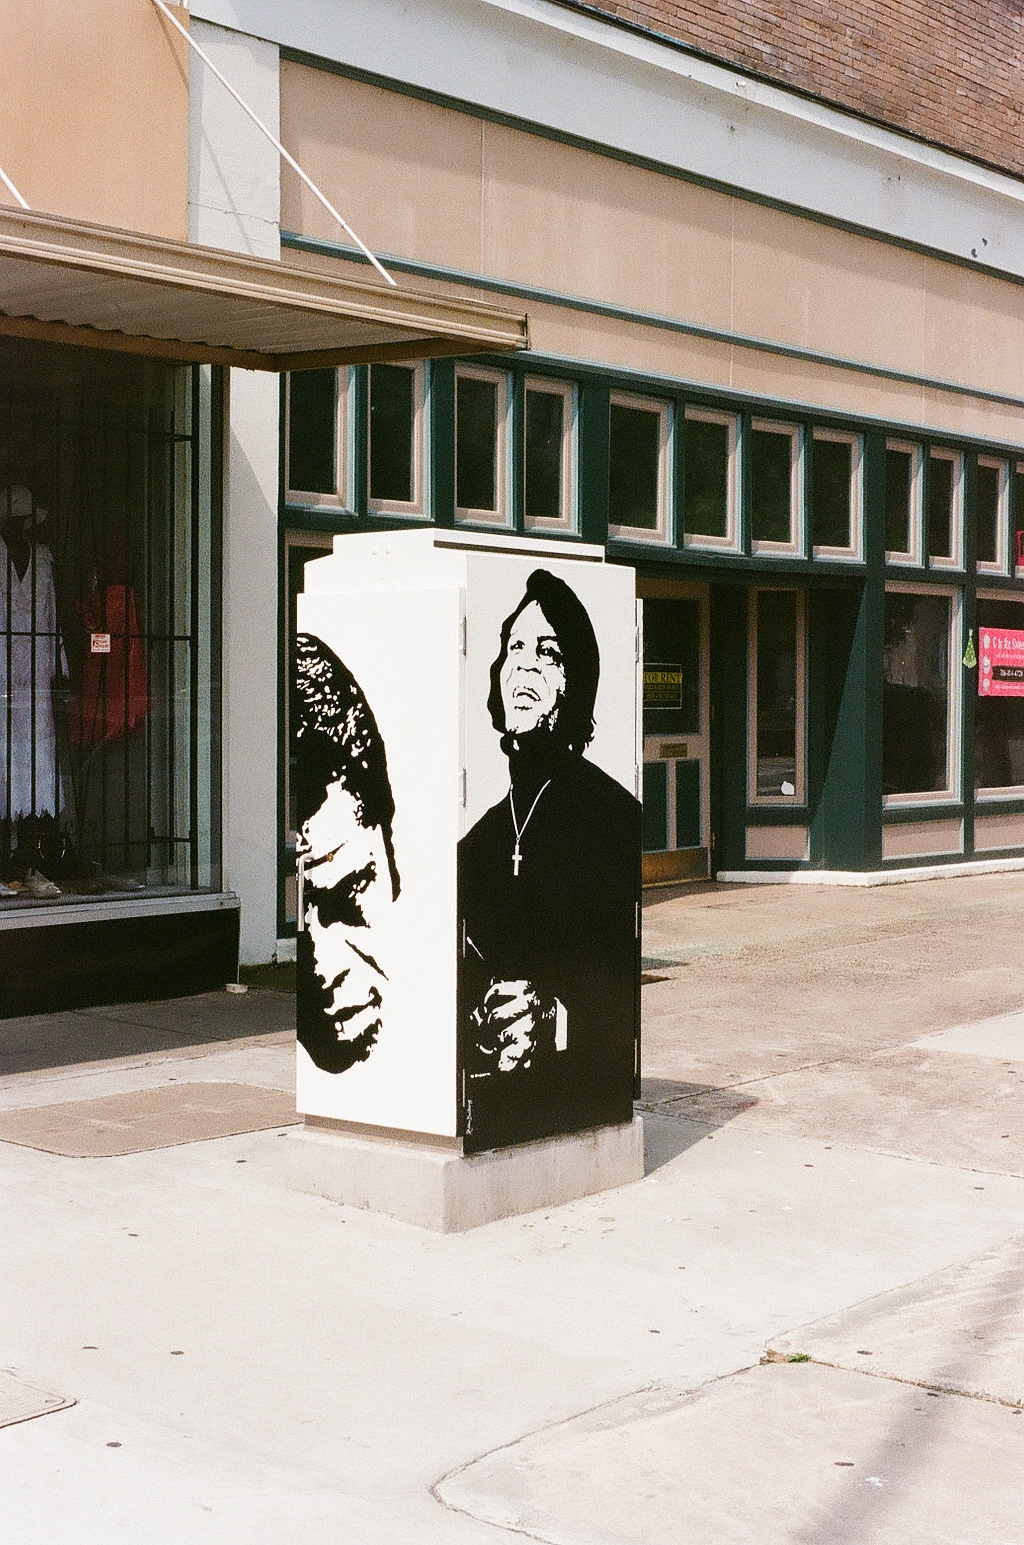 James Brown Art the Box on Broad Street in Augusta Georgia